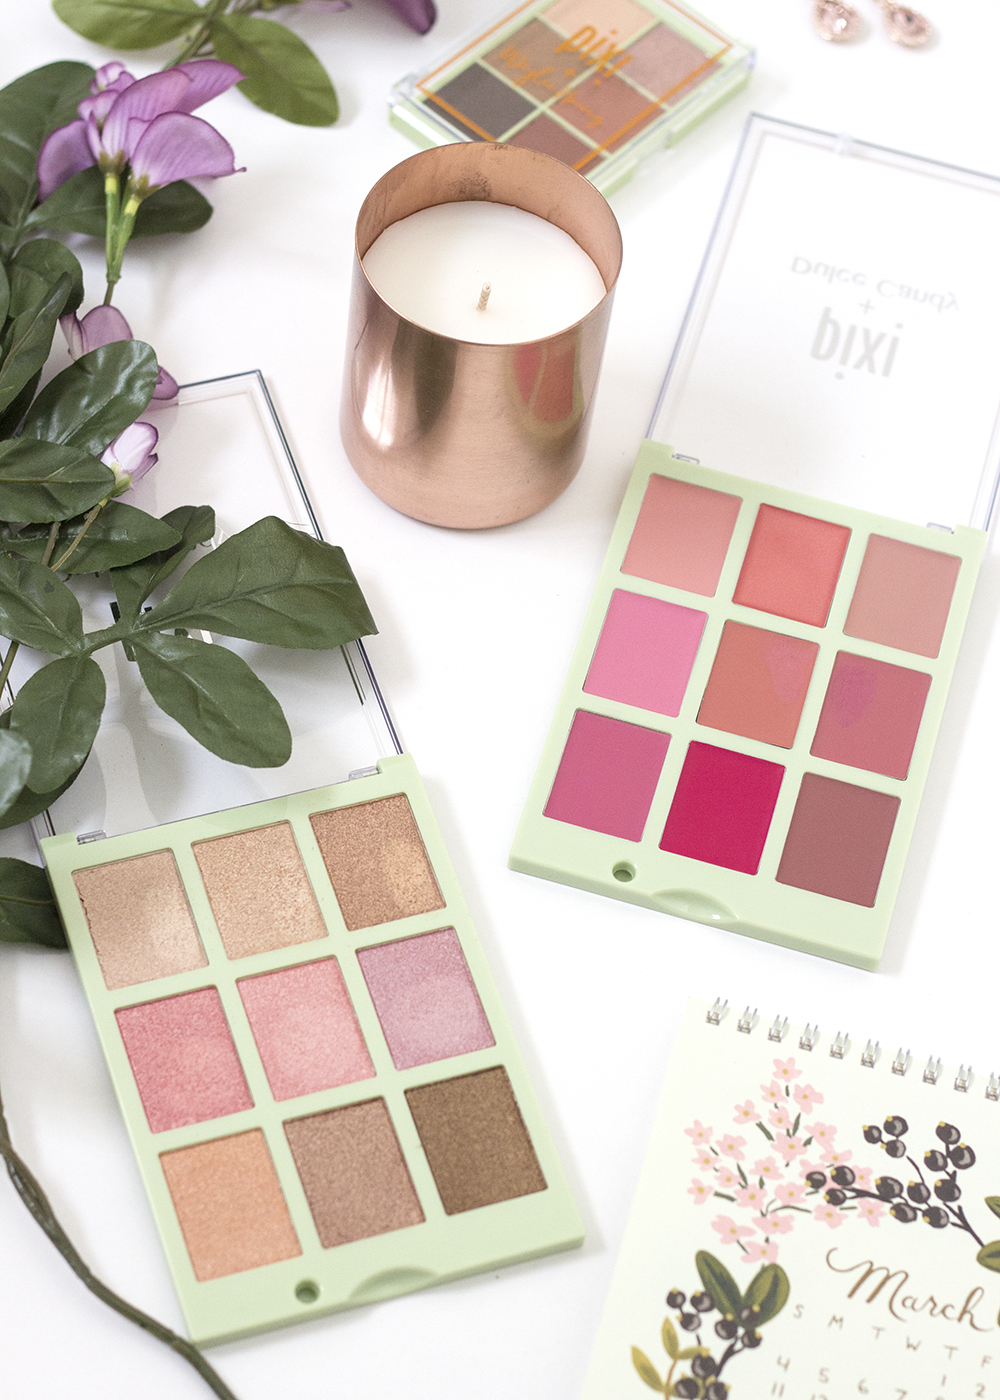 Pixi Beauty Dulce Candy Cafe Con Dulce & Dulce's Lip Candy Palettes